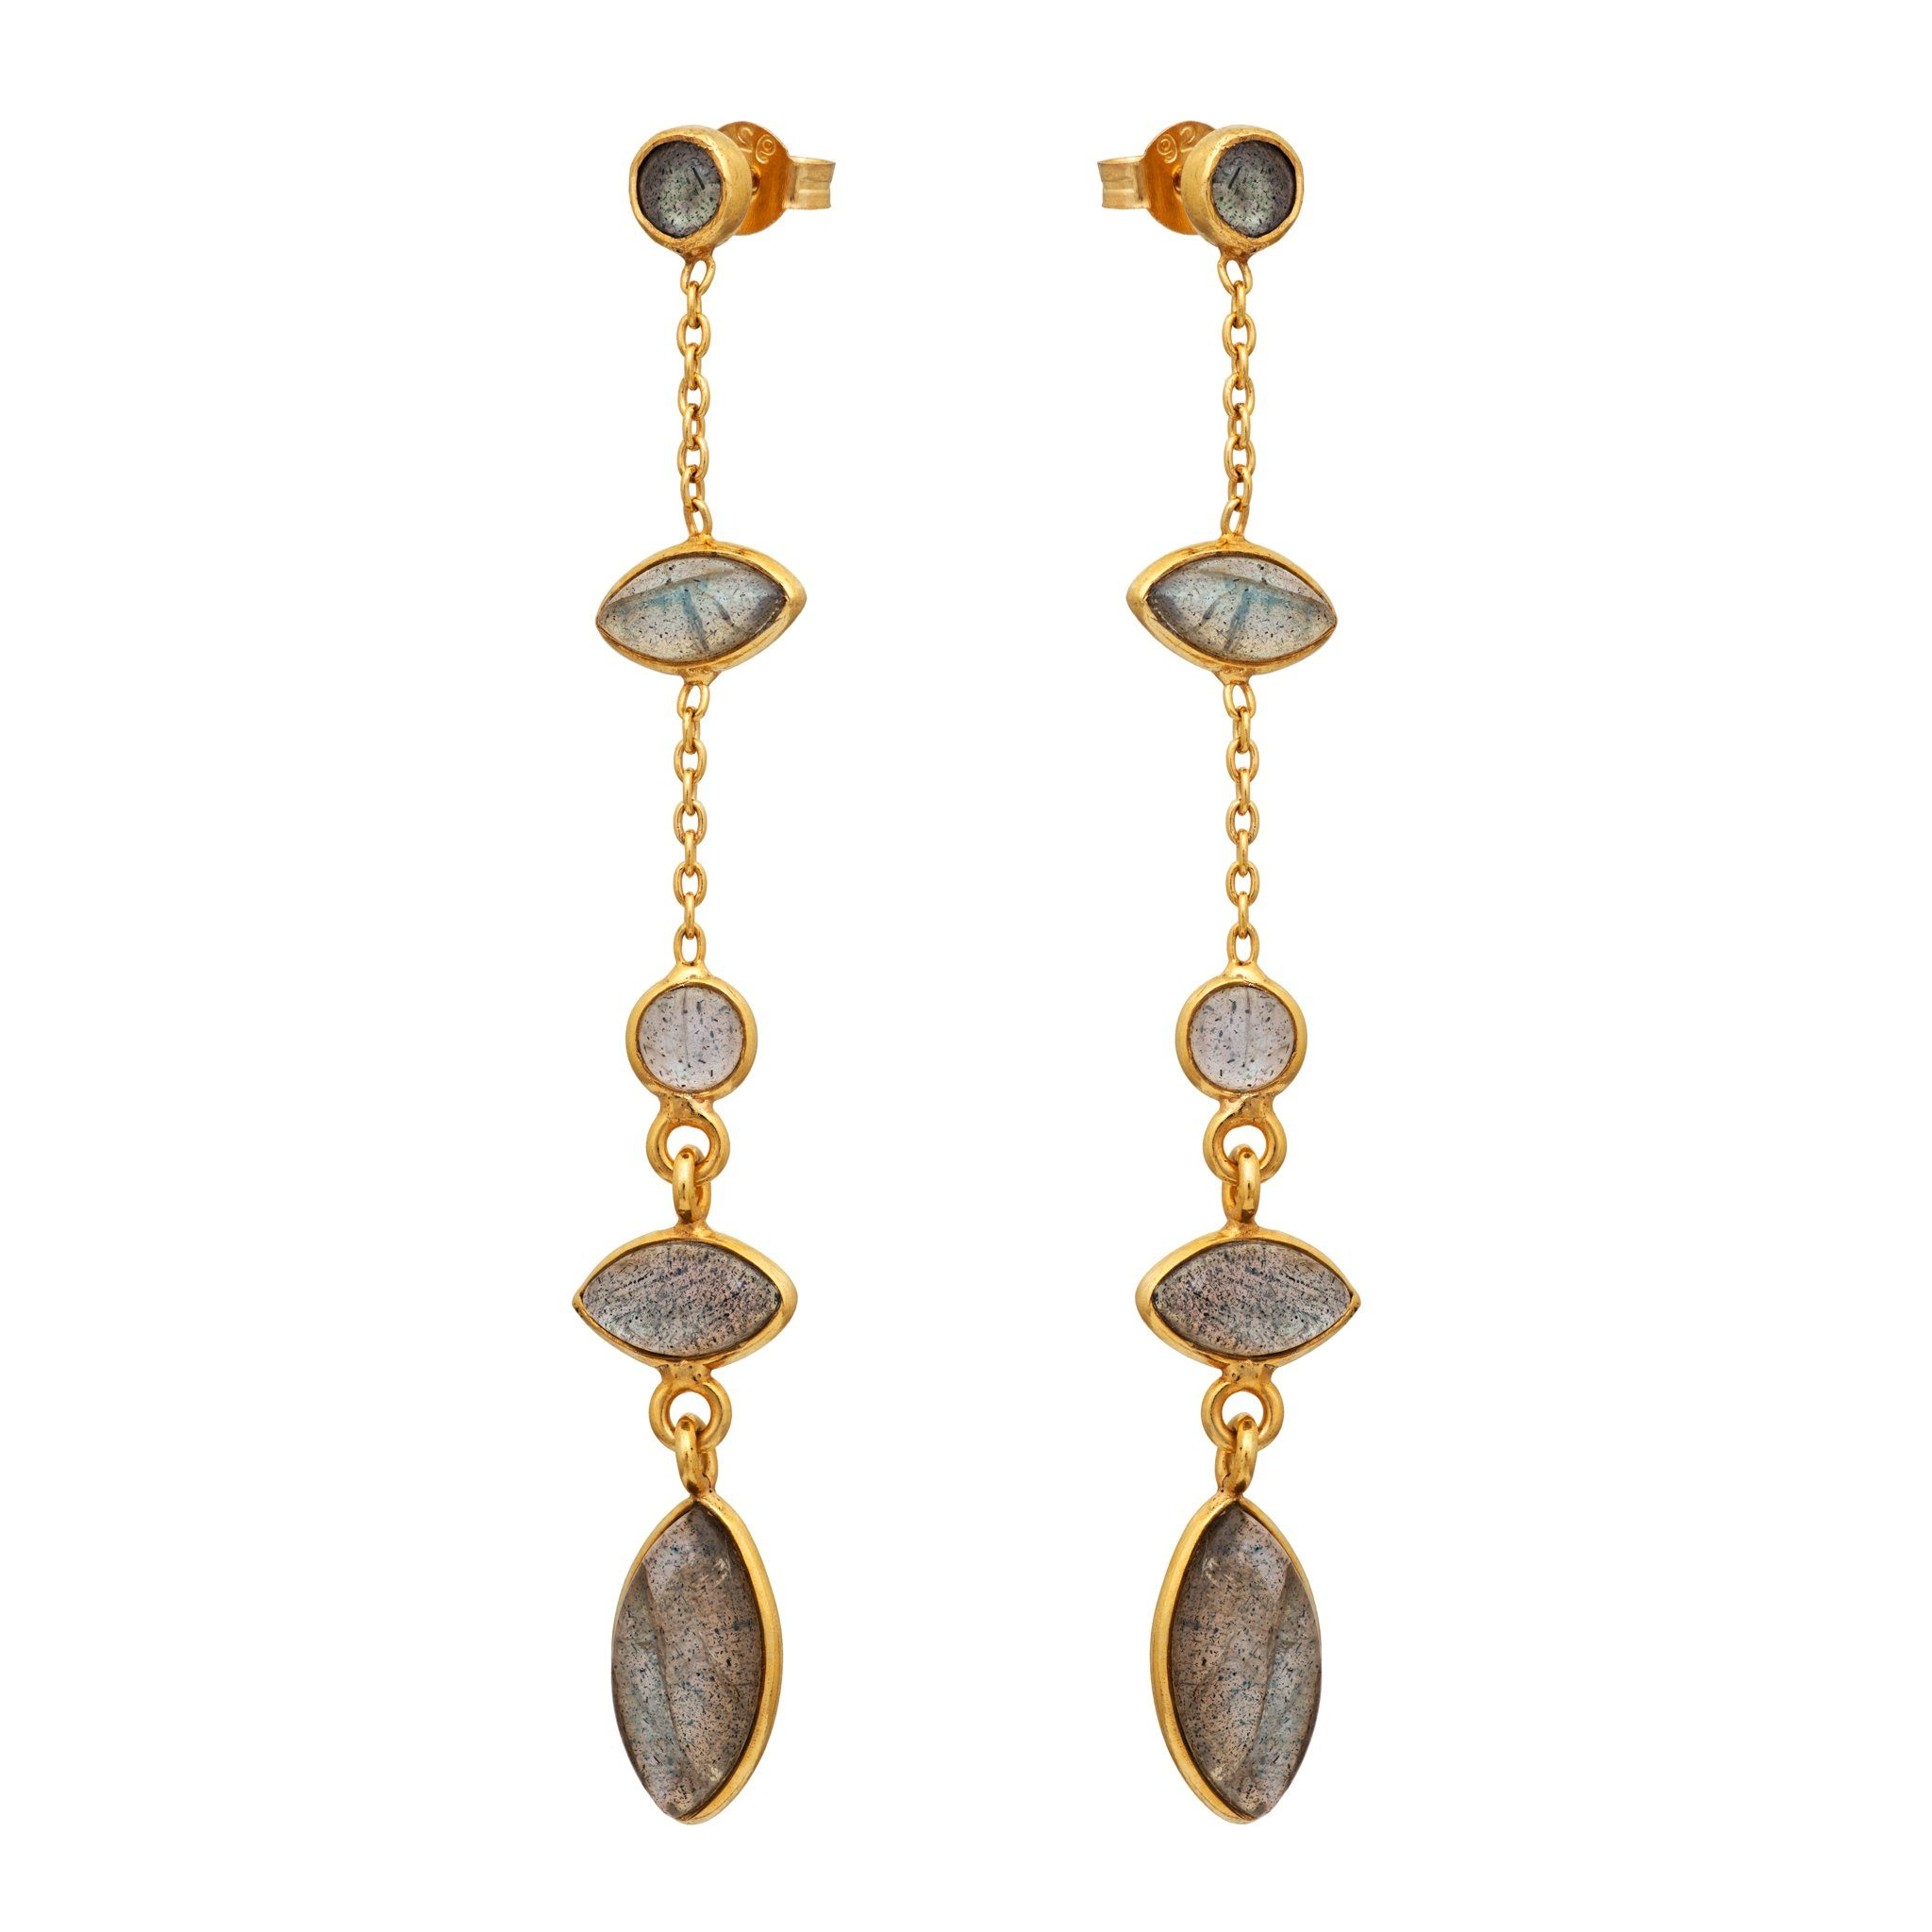 TA labradorite earrings - MadamSiam